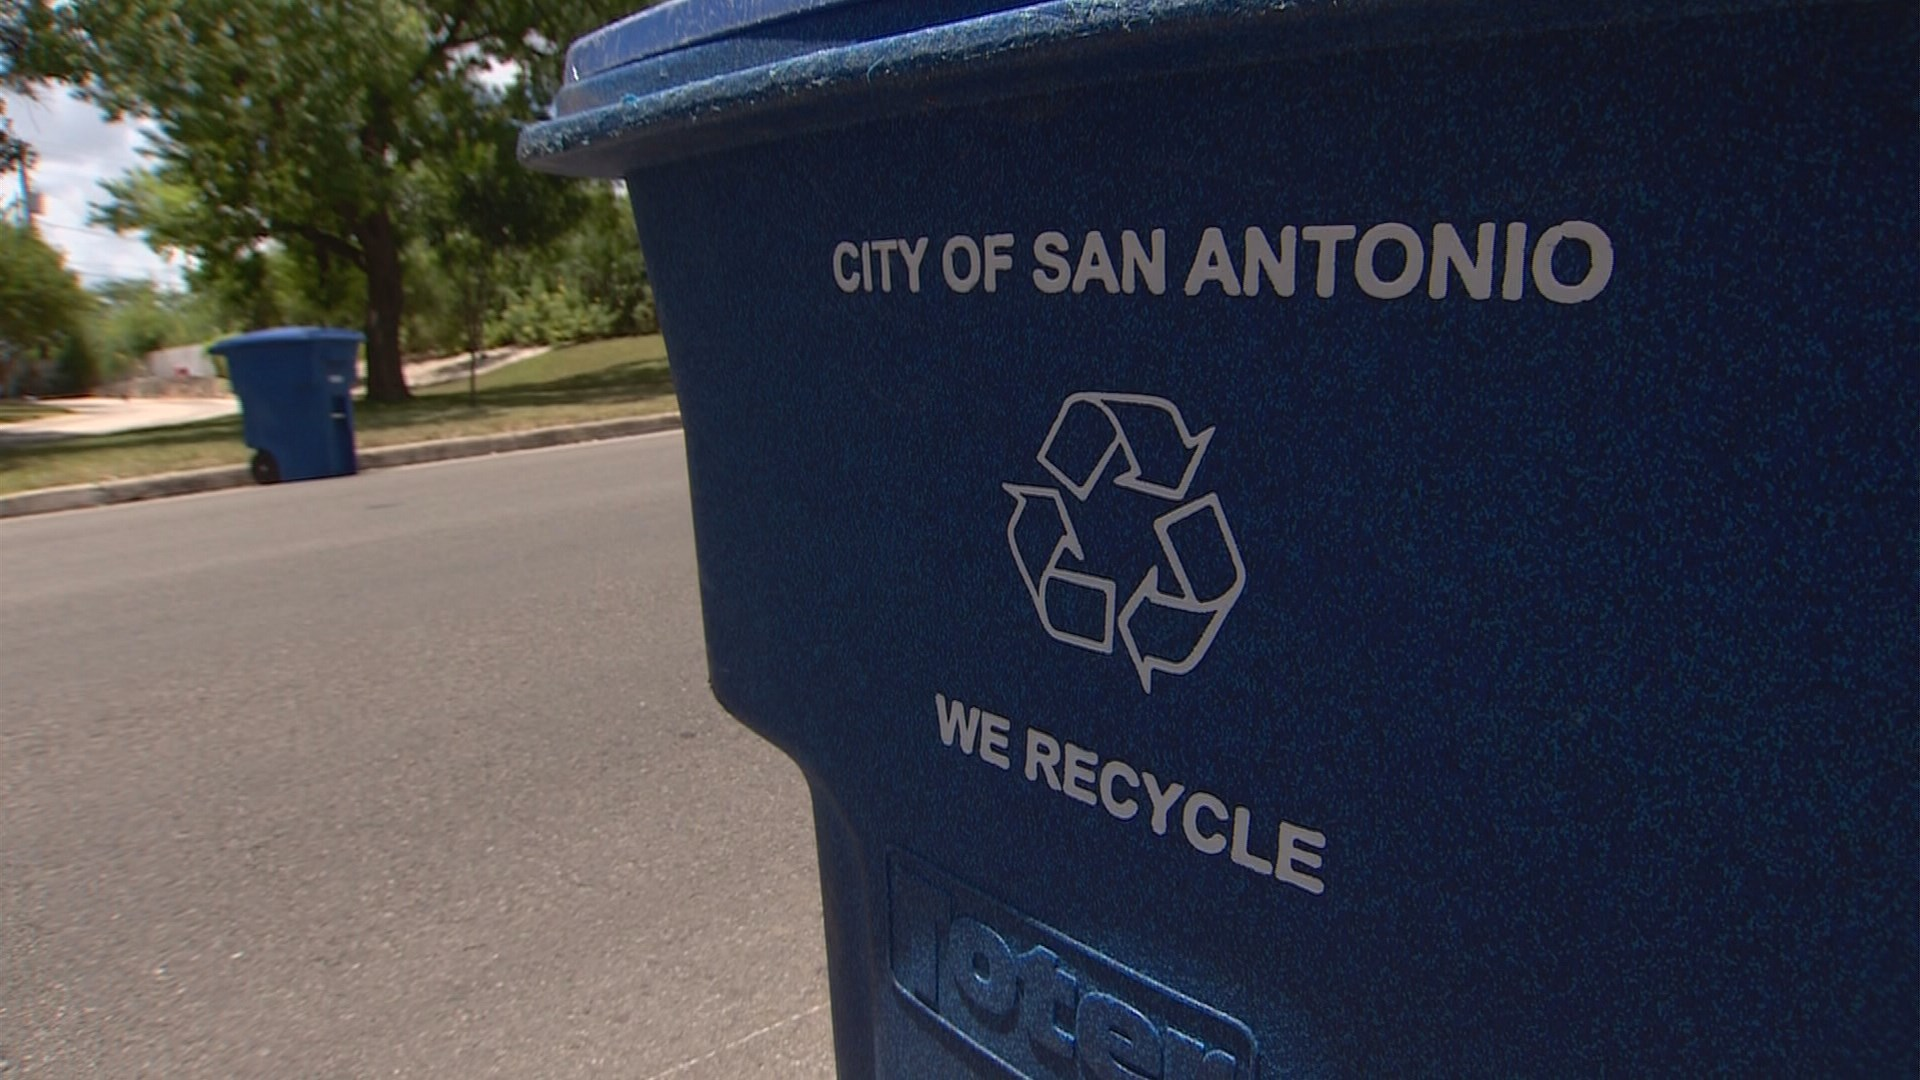 Blue apron how to recycle - Recycling Fines Take Effect Dirty Diapers Causing Contamination Issues Kens5 Com